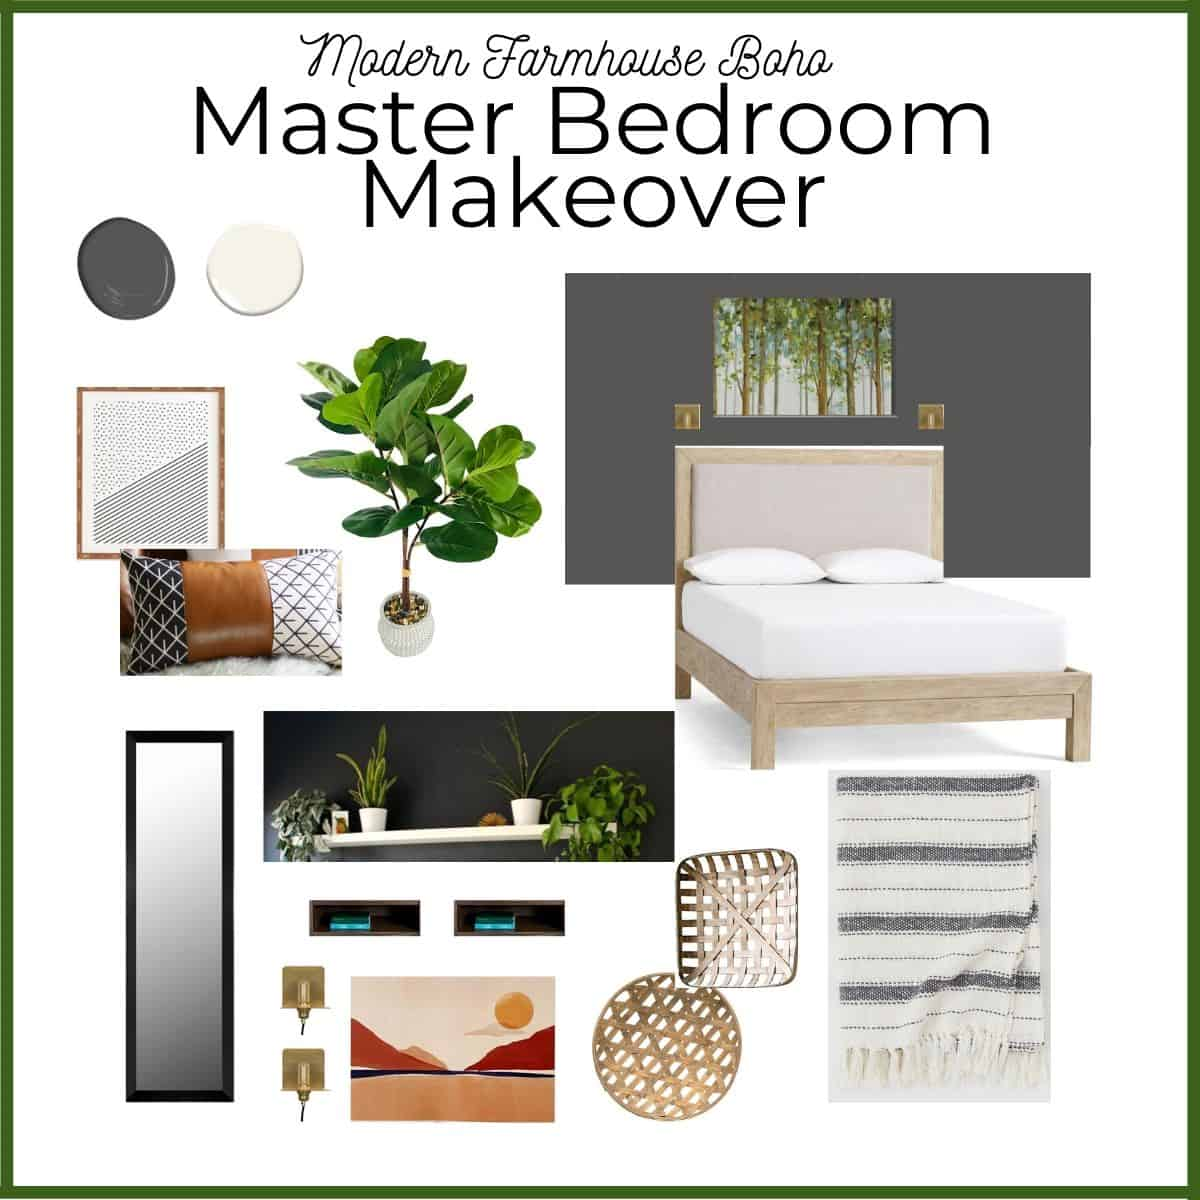 Mood board of a modern farmhouse boho inspired master bedroom makeover